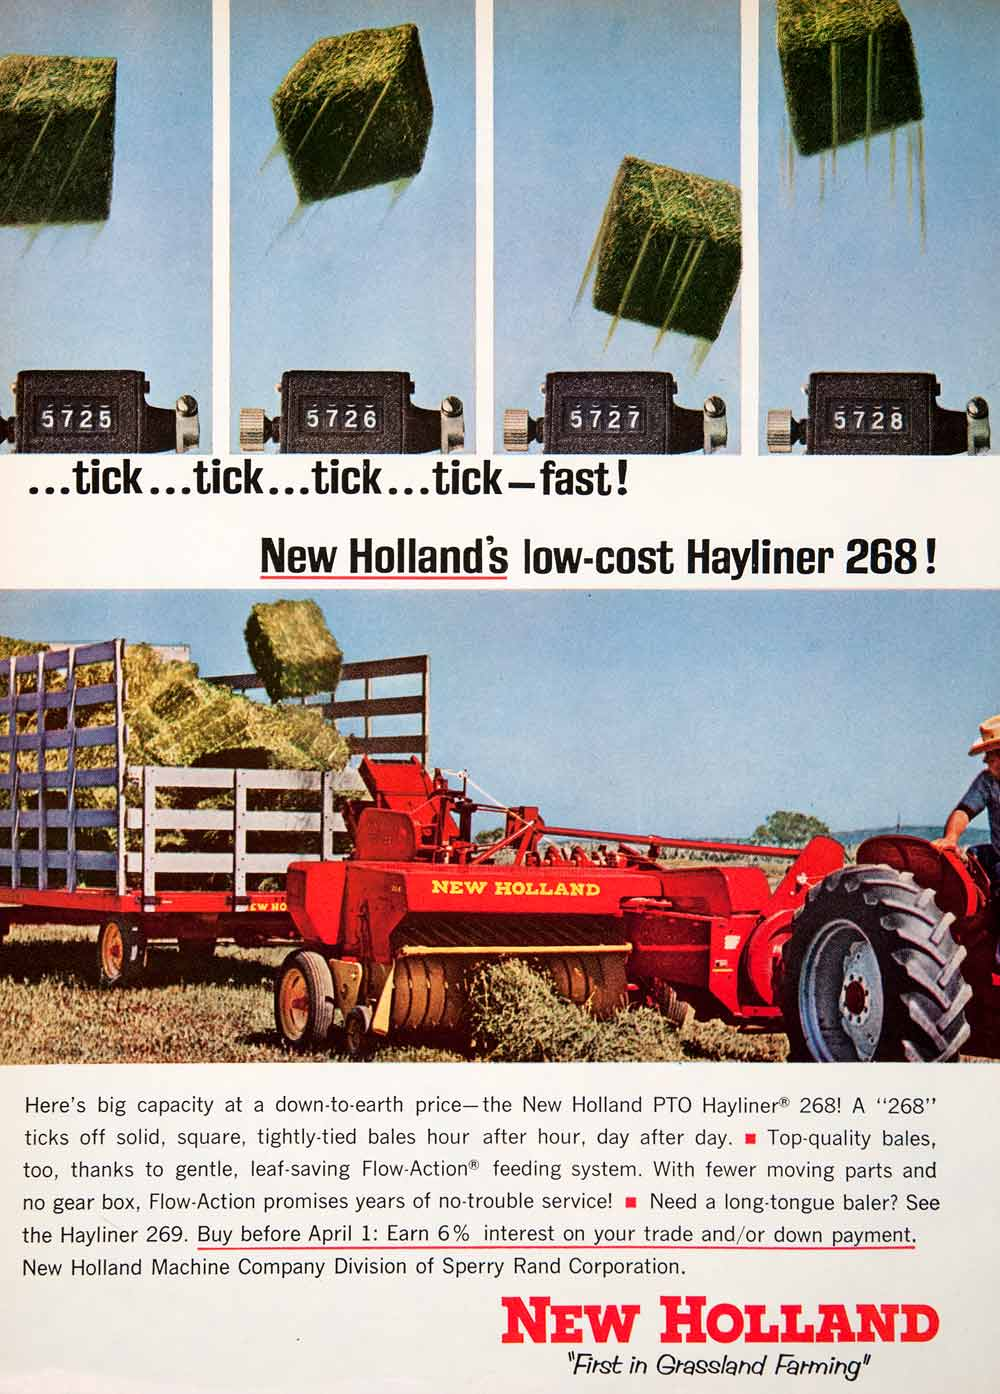 1965 Ad New Holland Sperry Rand Hay Bale Hayliner 268 Farming Agriculture SF4